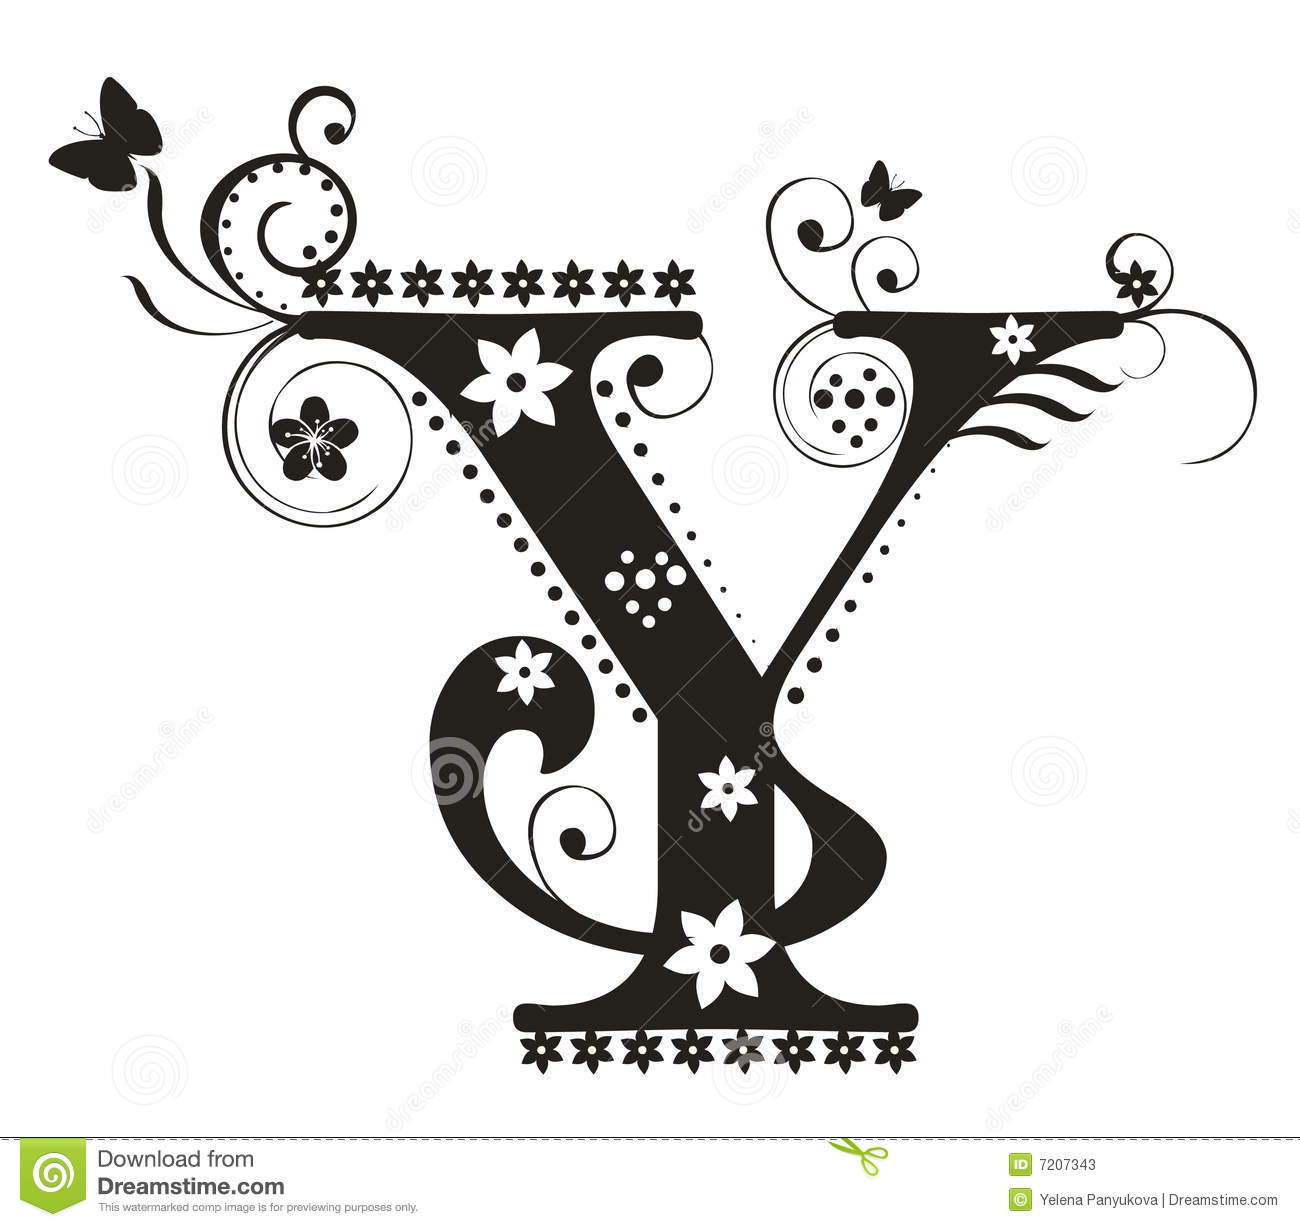 L 2 likewise ZGVzbW9zIGdyYXBoaW5nIGFydA also Stock Illustration Letter Made Of Musical Notes also Photos Stock Lettre Y Image7207343 in addition Cool Characters To Draw How To Draw A Graffiti Character Cool Character Youtube 3. on y letter art